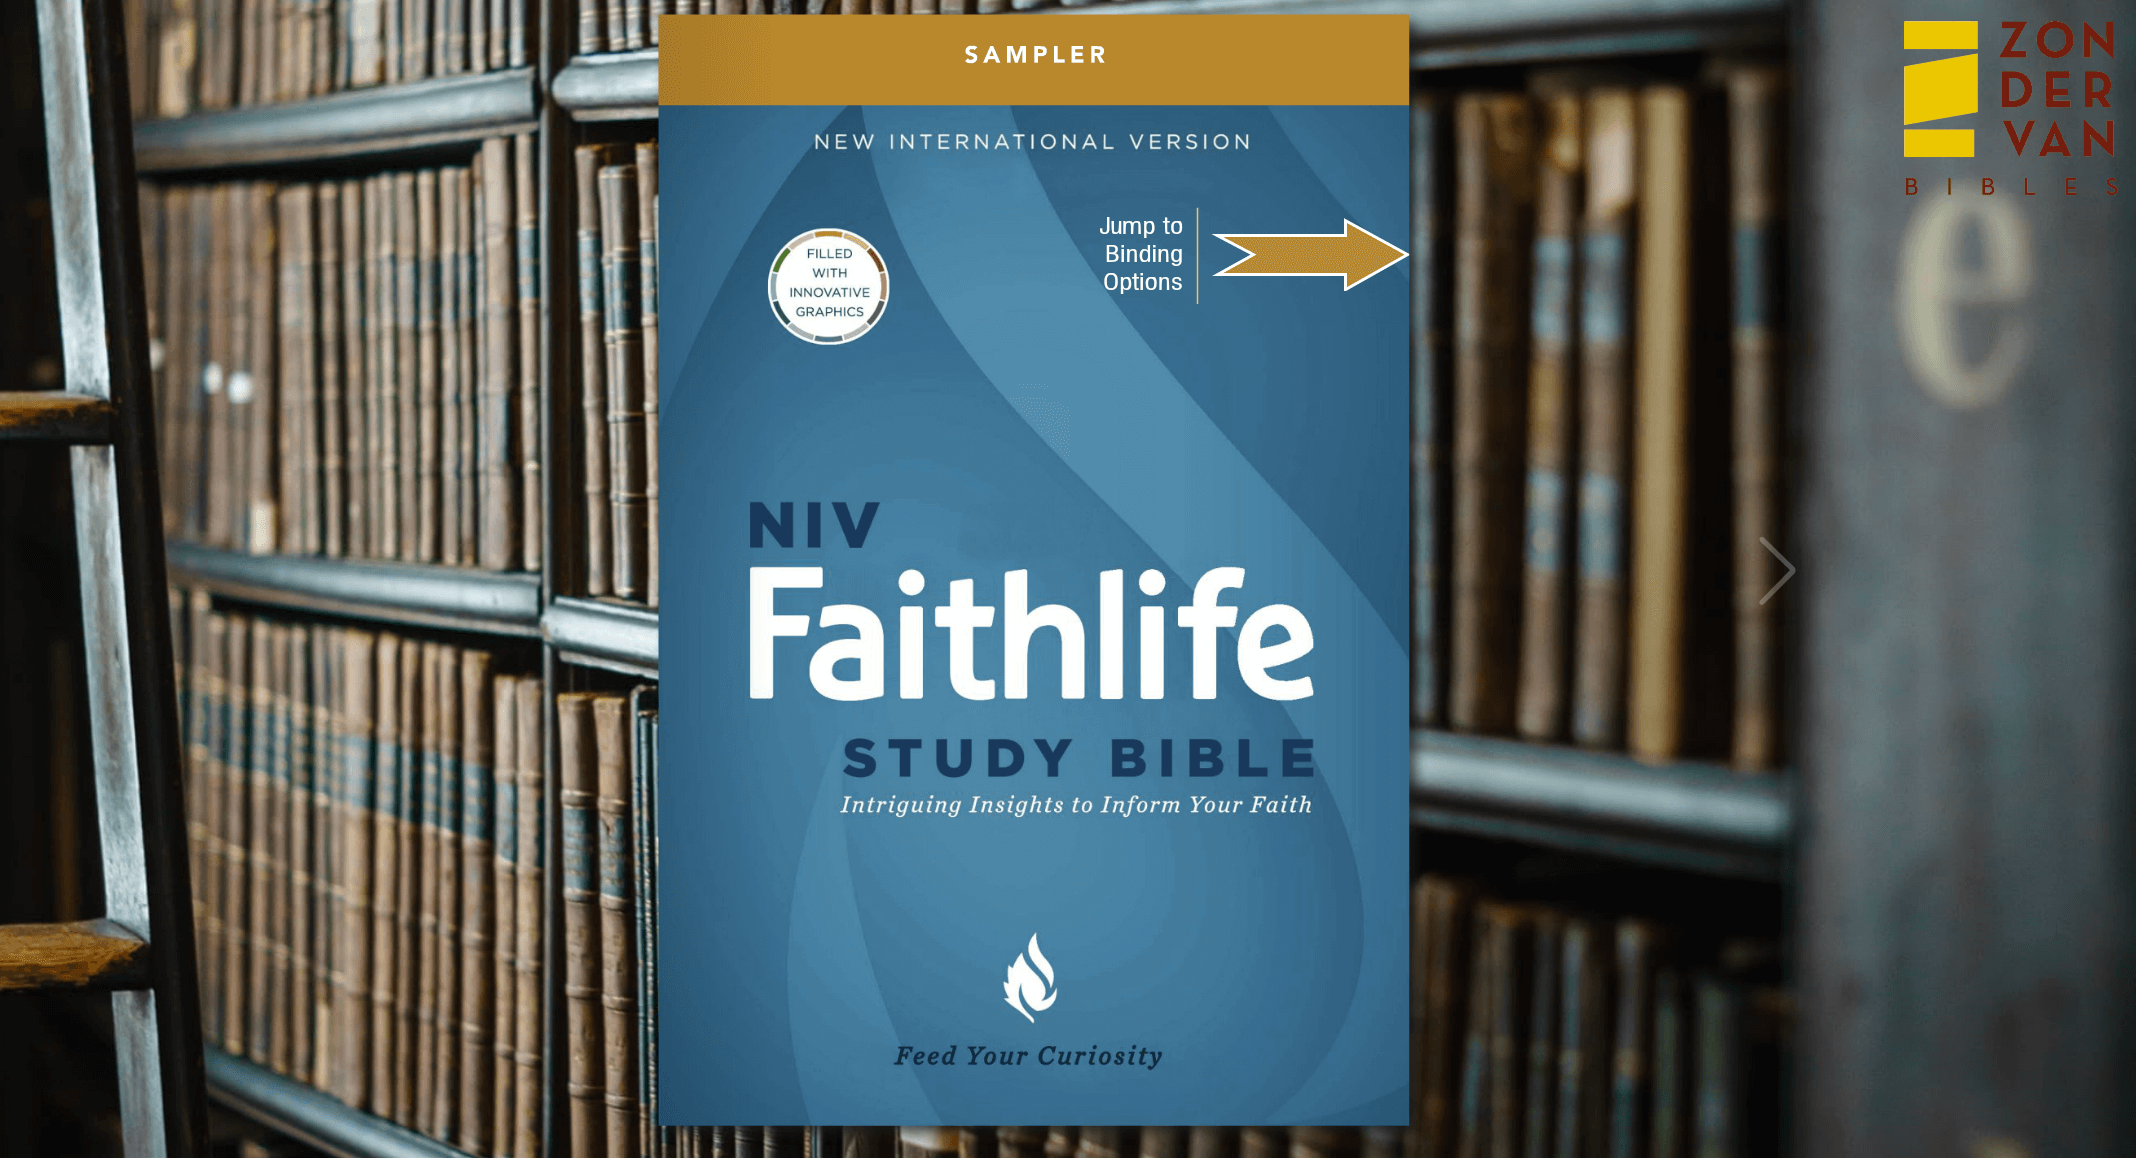 Click the image to view in a new window an interactive sampler of the NIV Faithlife Study Bible